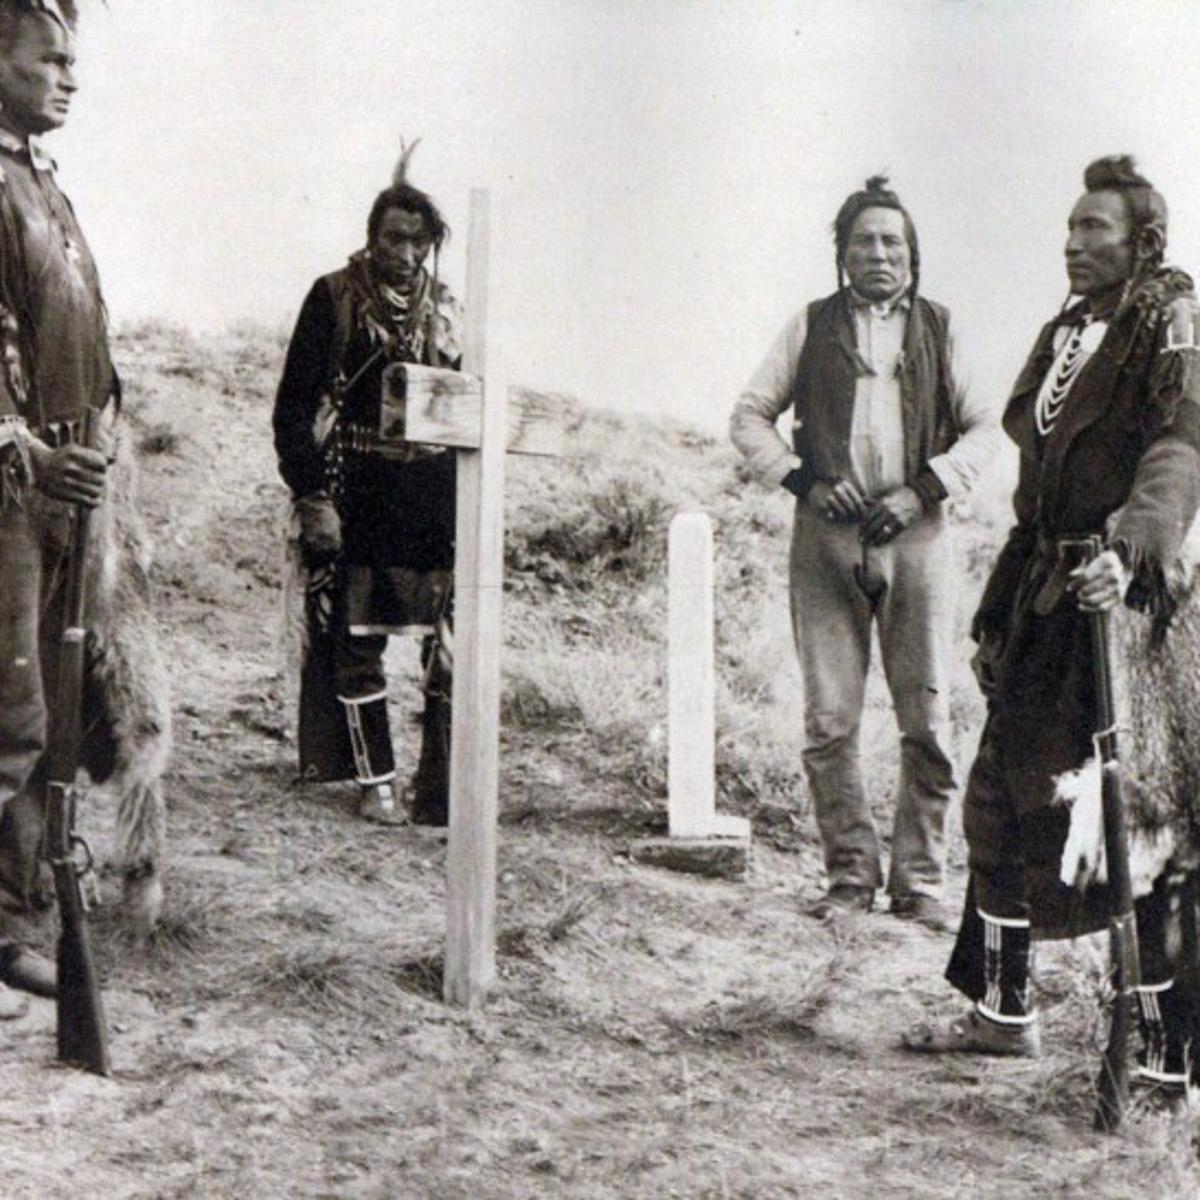 History lesson: Crow scouts played complex role in Little